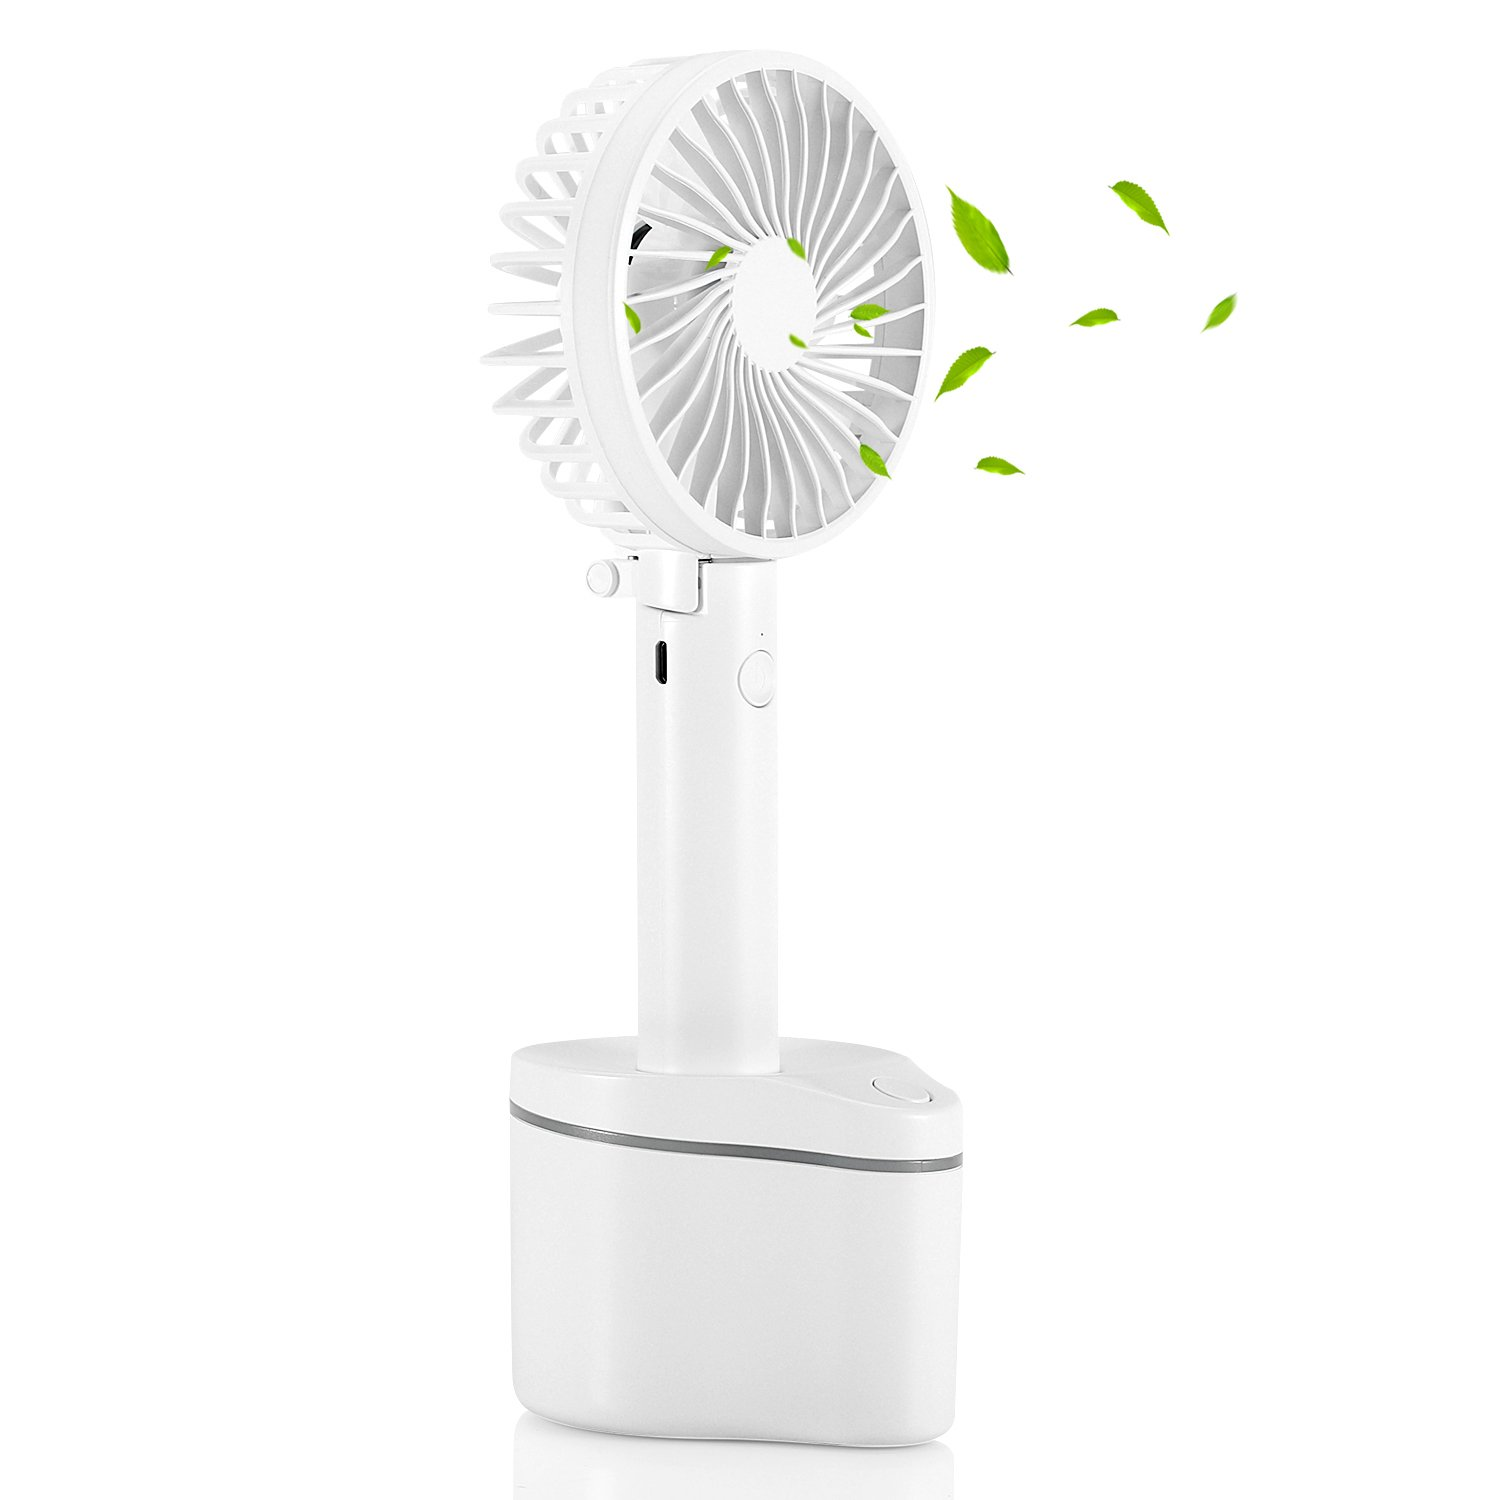 SENDOW Portable Rotating Desk Fan with 5 Speeds 180°Collapsible 2600mAh Capacity Rechargeable Mini USB Fans, Handheld Personal Fan Home, Office, Outdoor, Travel Cooling Fans White